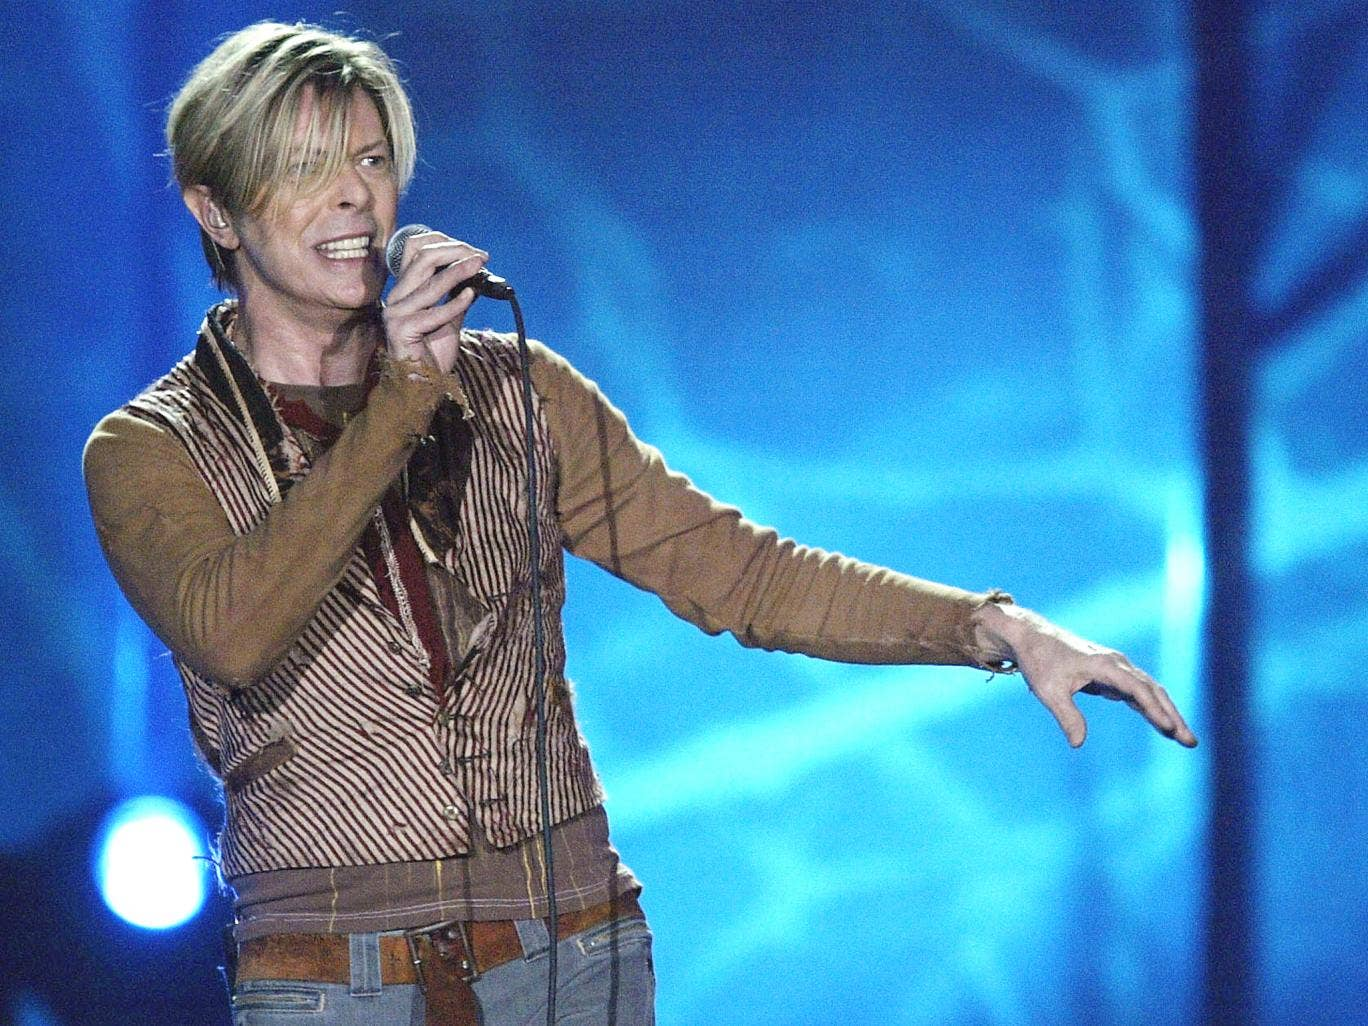 David Bowie released the single on his 66th birthday